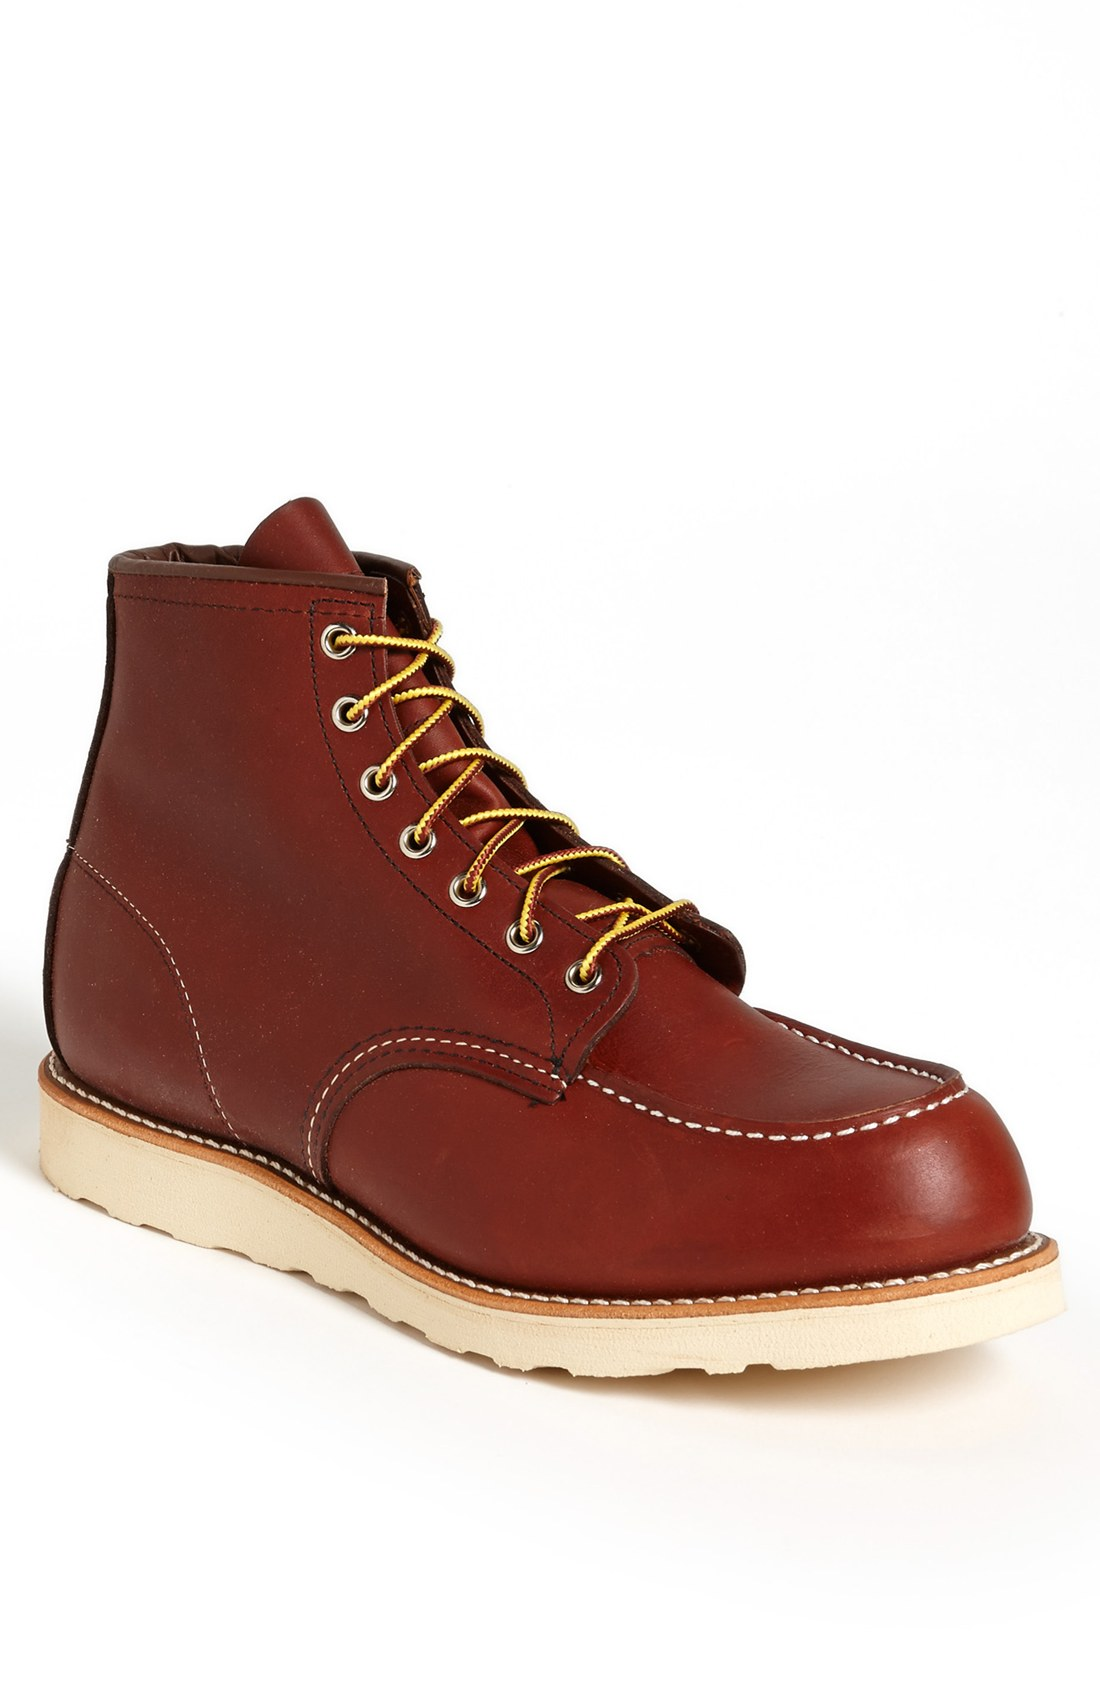 Red Wing Moc Toe Boot In Brown For Men Copper Lyst